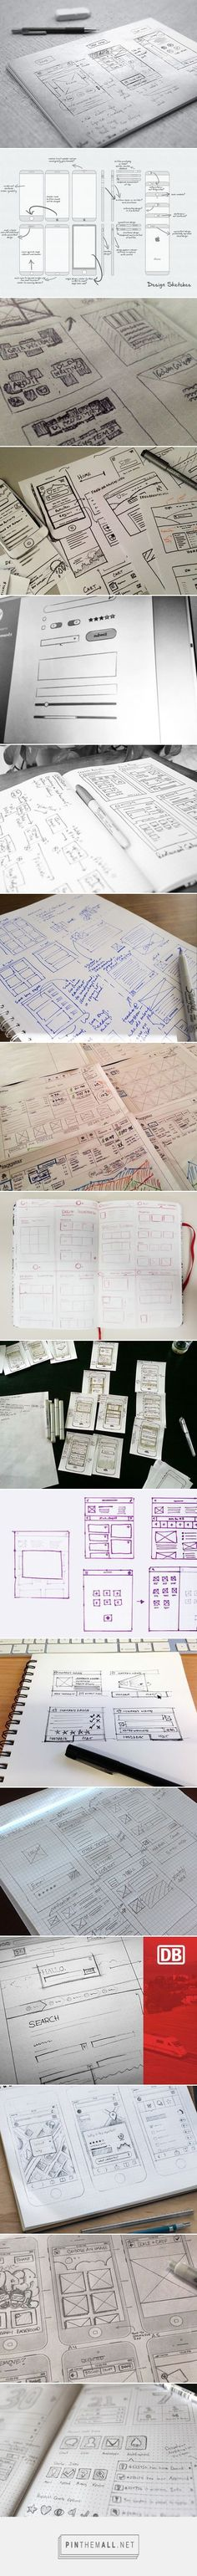 UI & Wireframe Sketches - created via https://pinthemall.net